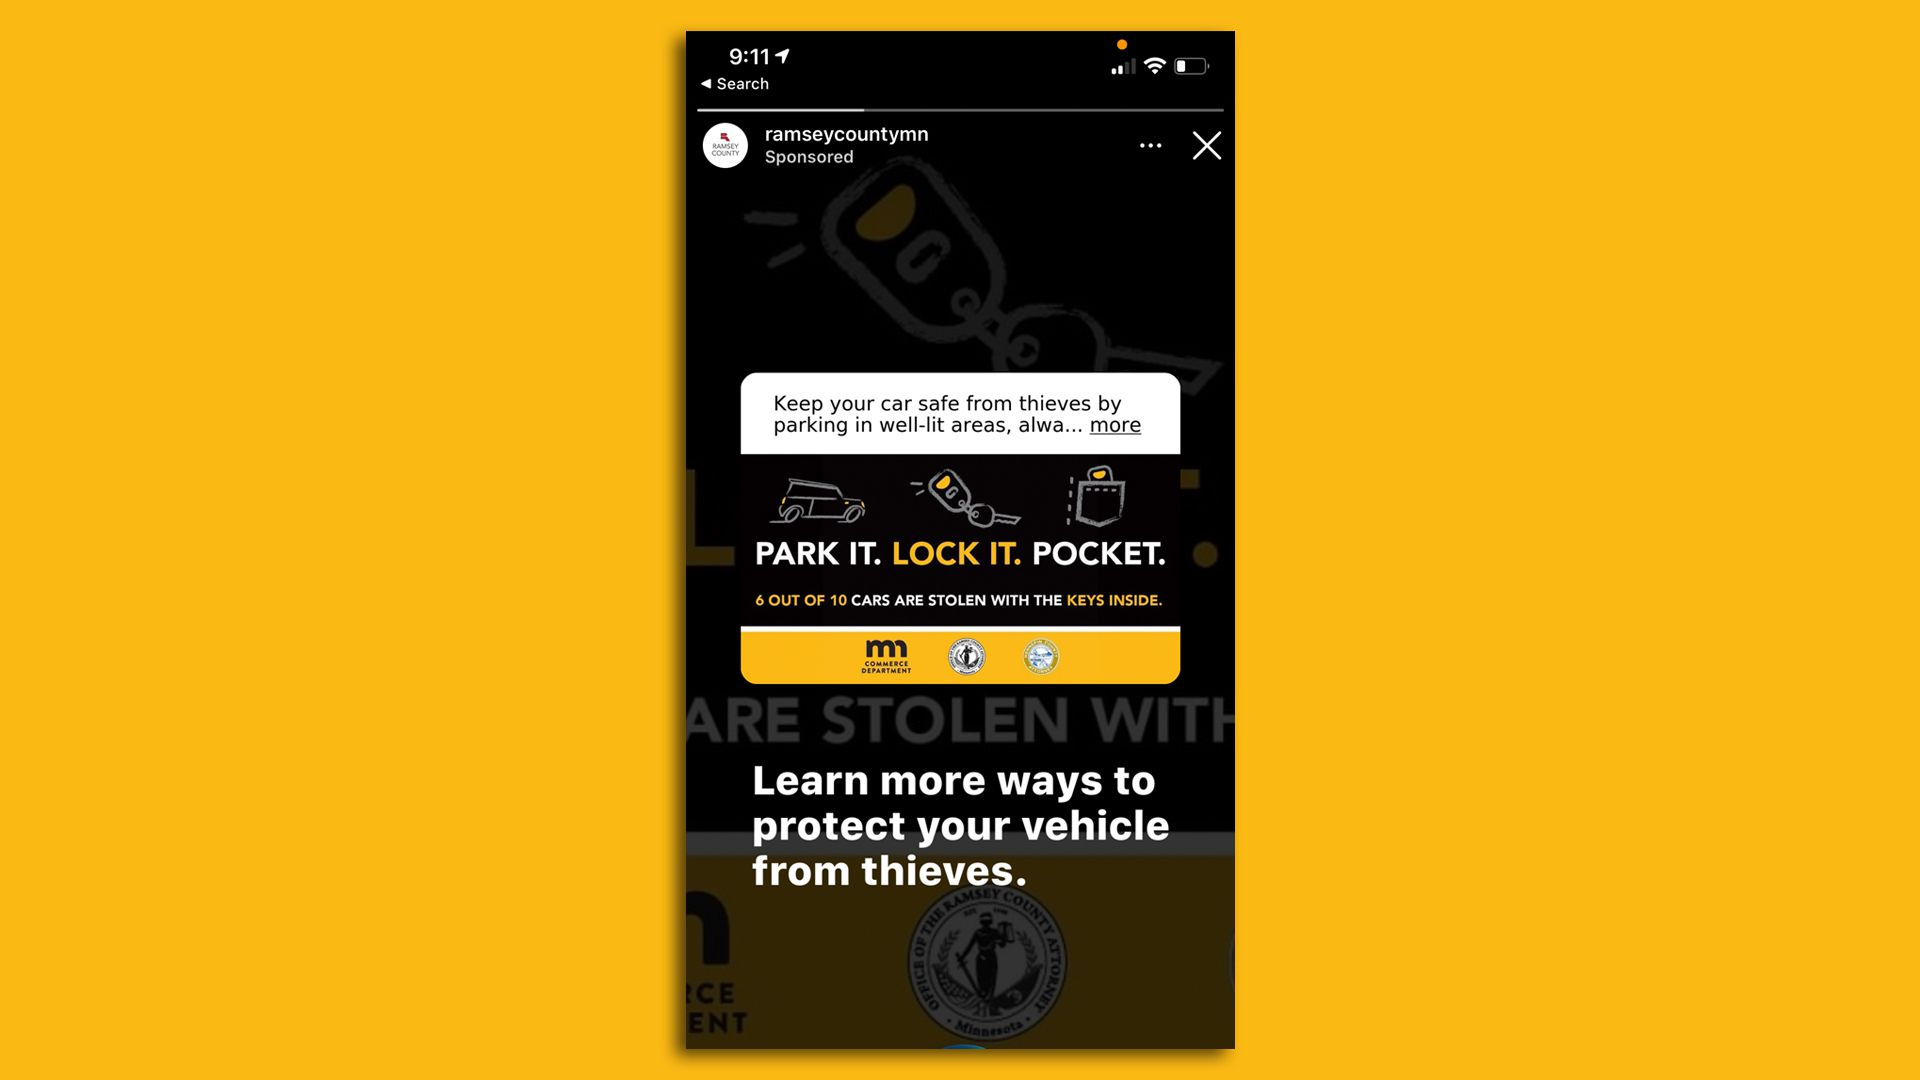 an instagram ad warning you to lock your car